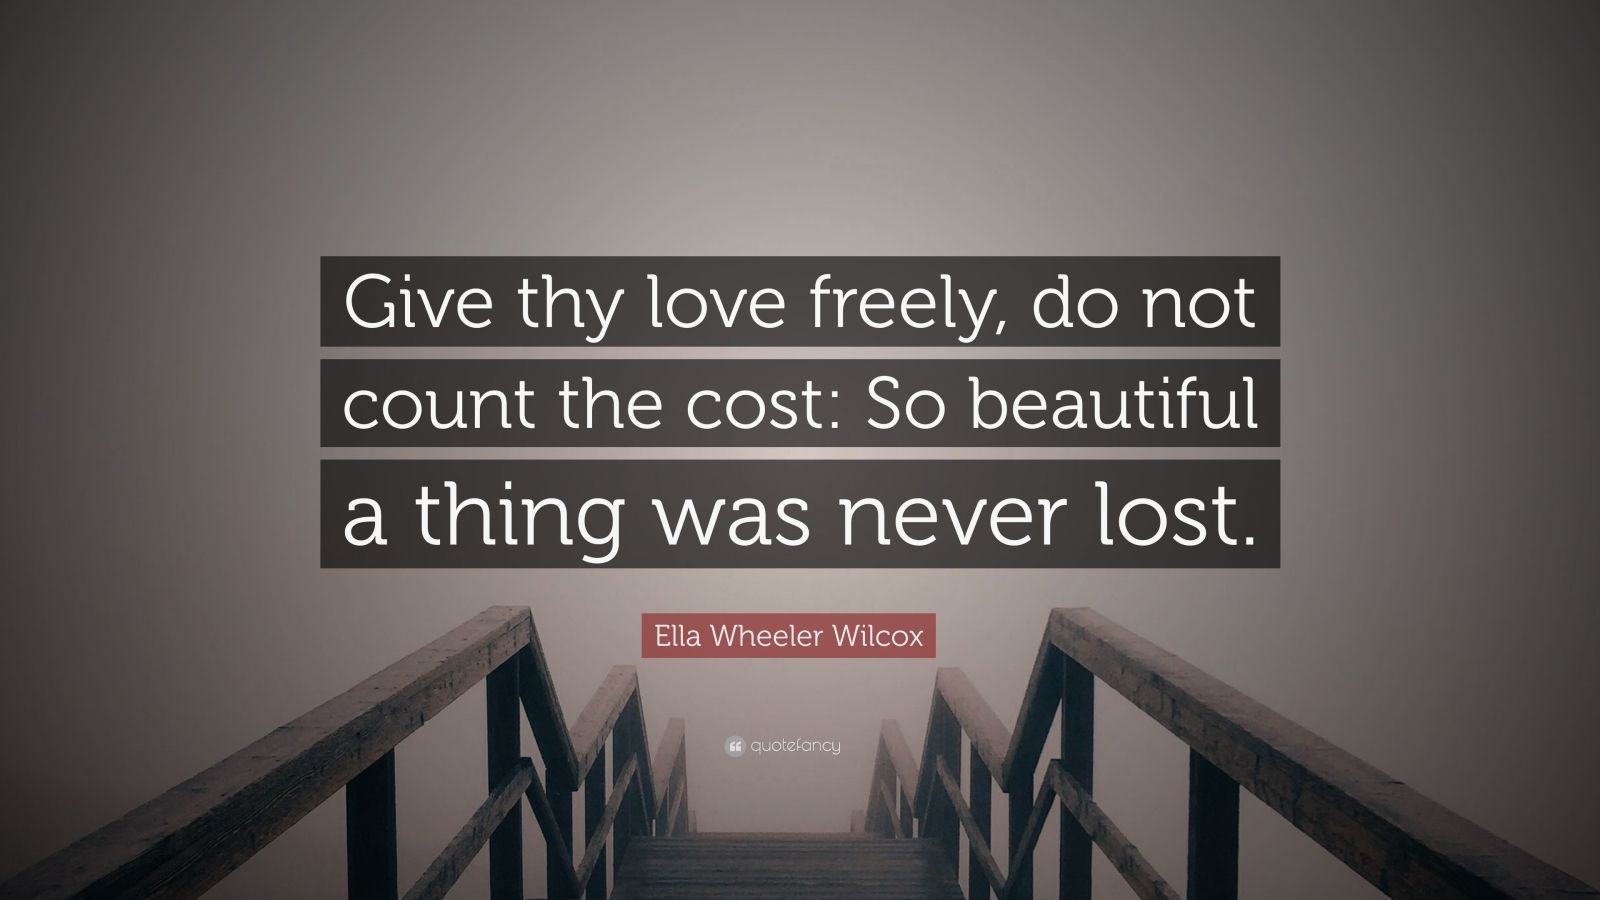 """Ella Wheeler Wilcox Quote: """"Give thy love freely, do not count the cost: So beautiful a thing was never lost."""""""